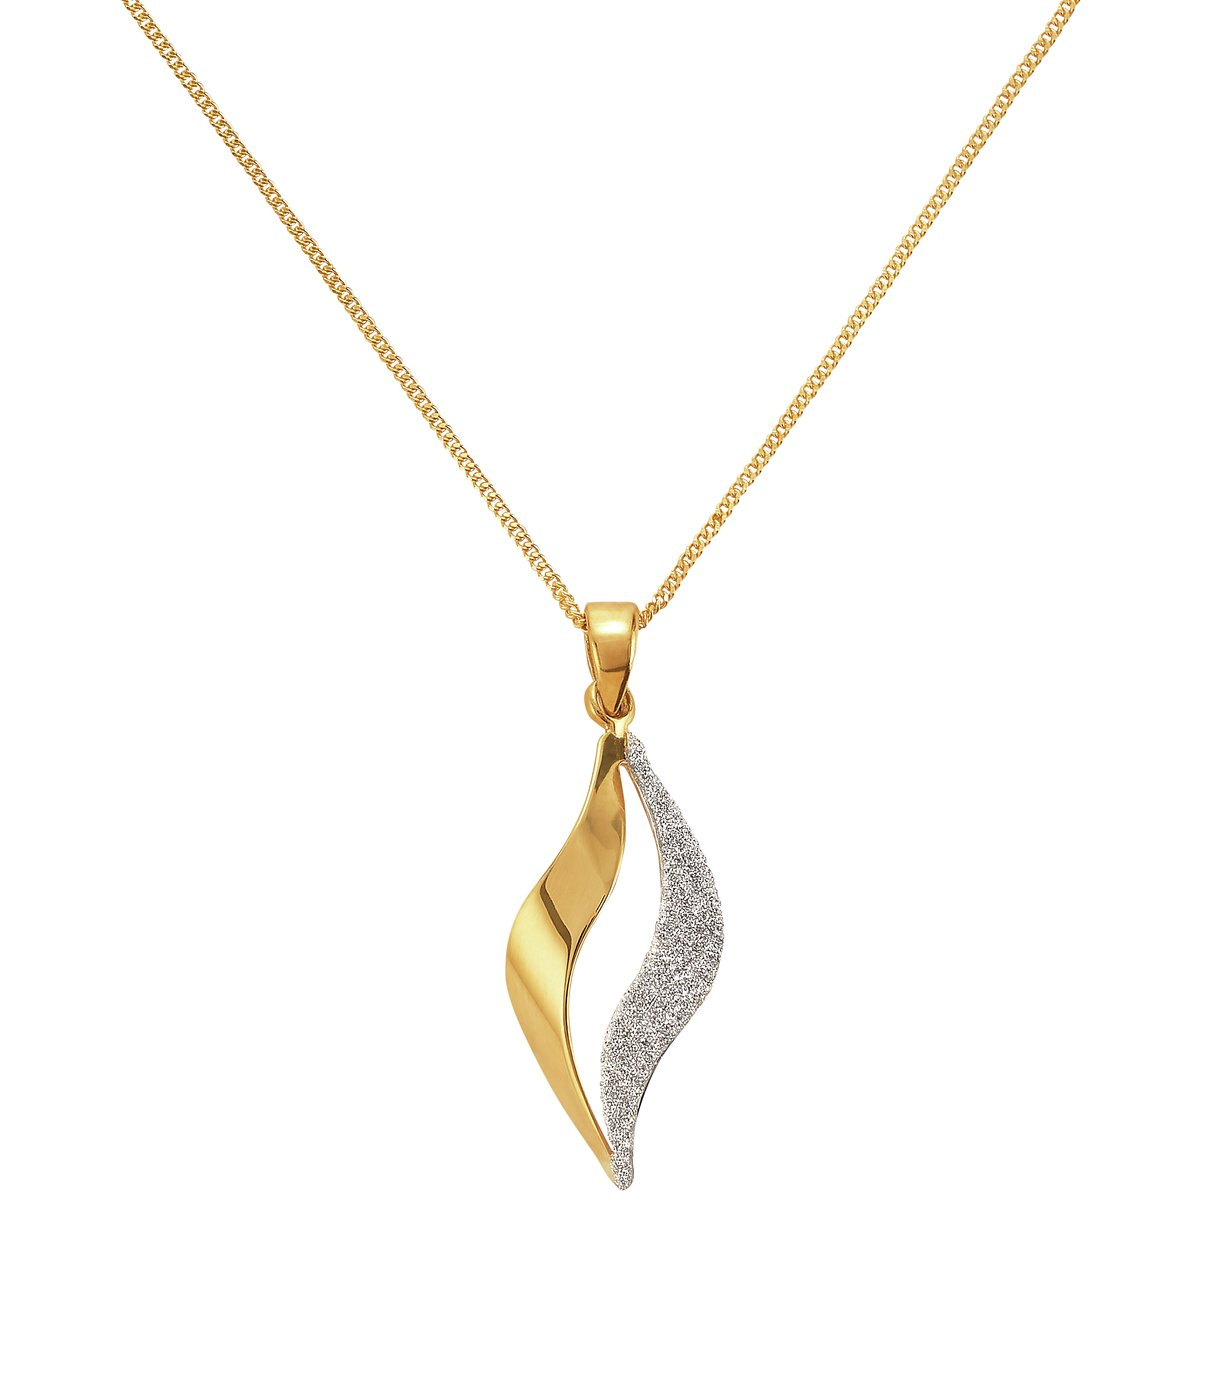 Revere 9ct Gold Plated Silver Glitter Flame Pendant